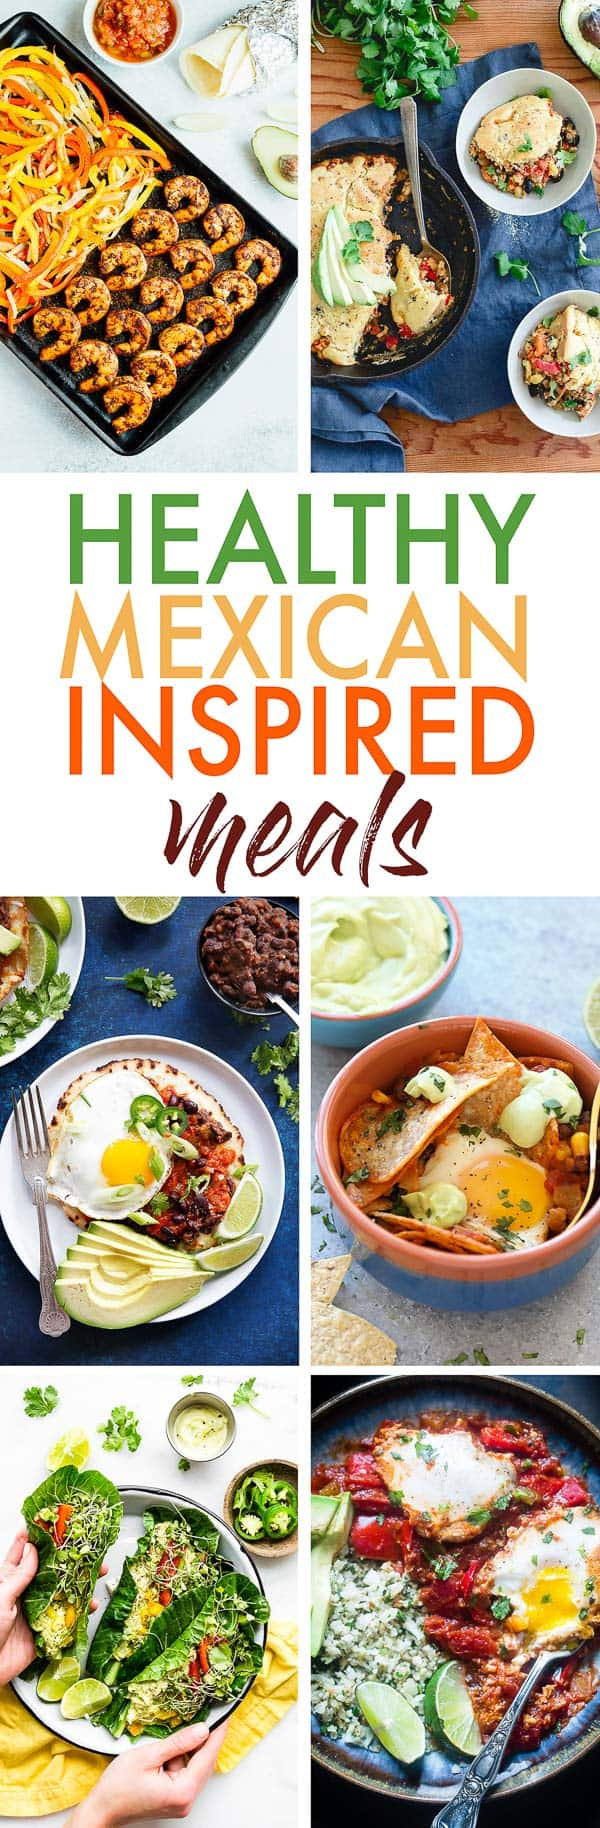 Healthy Mexican Inspired Meals